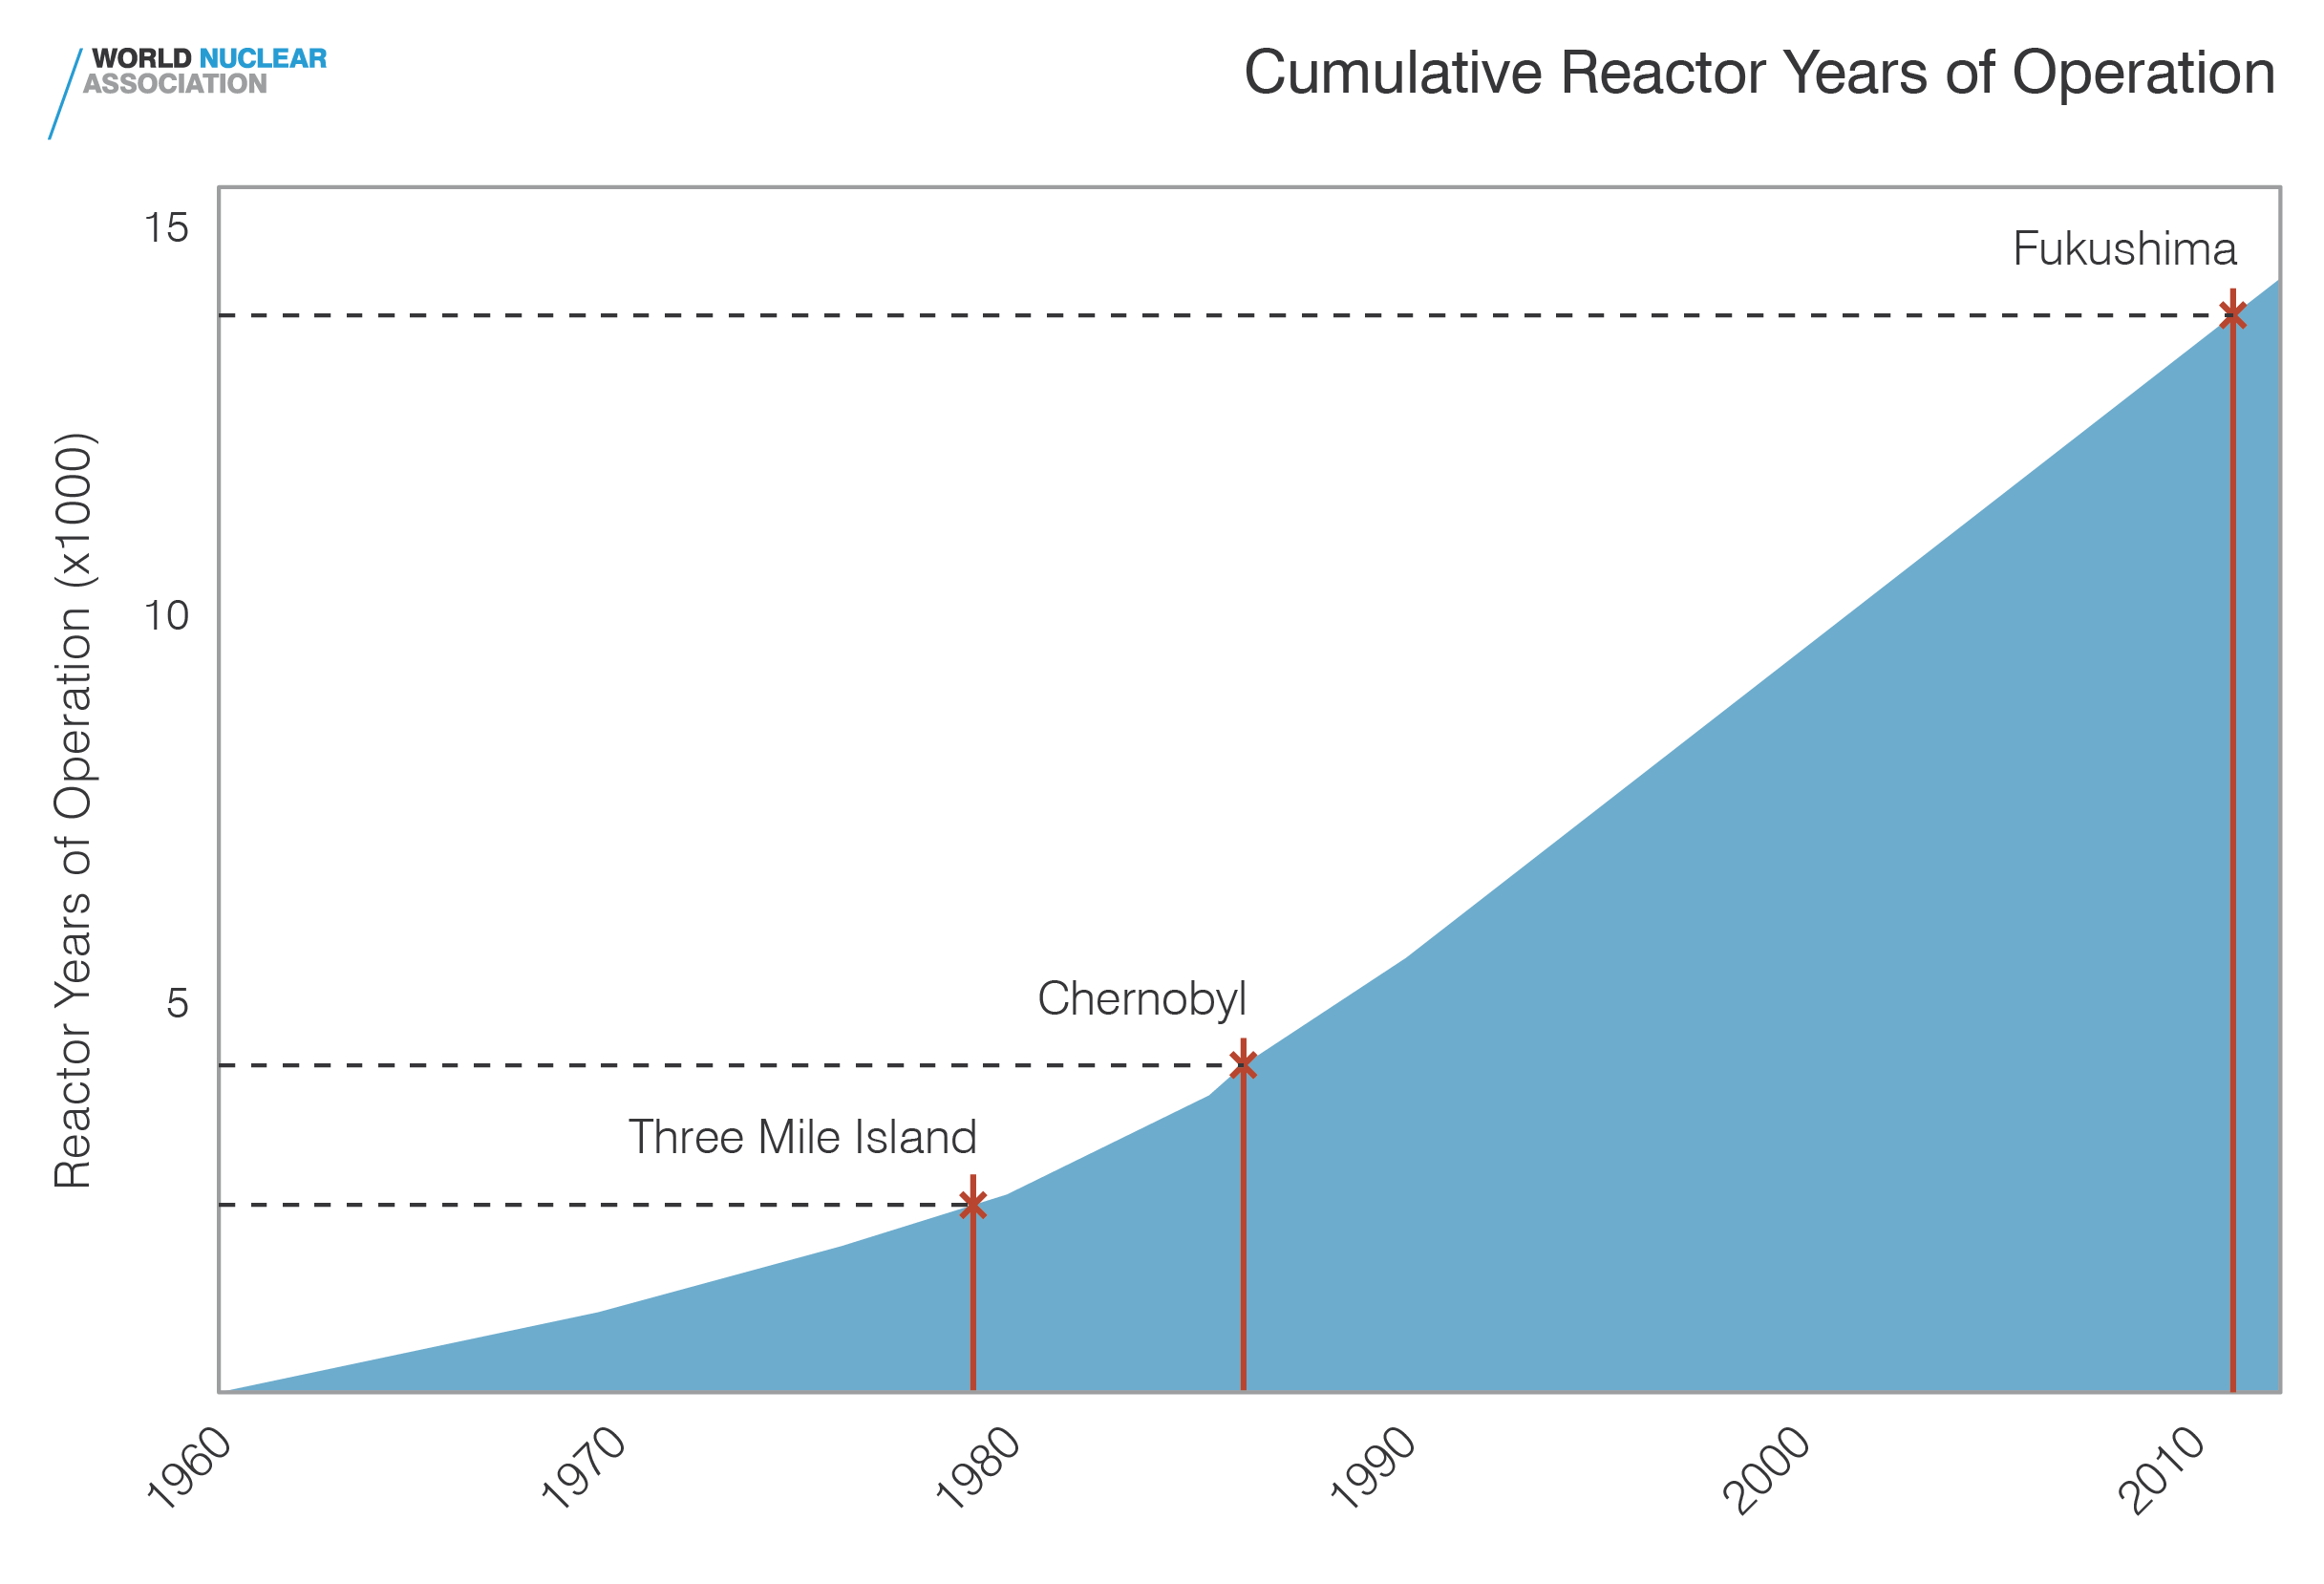 Cumulative reactor years of operation